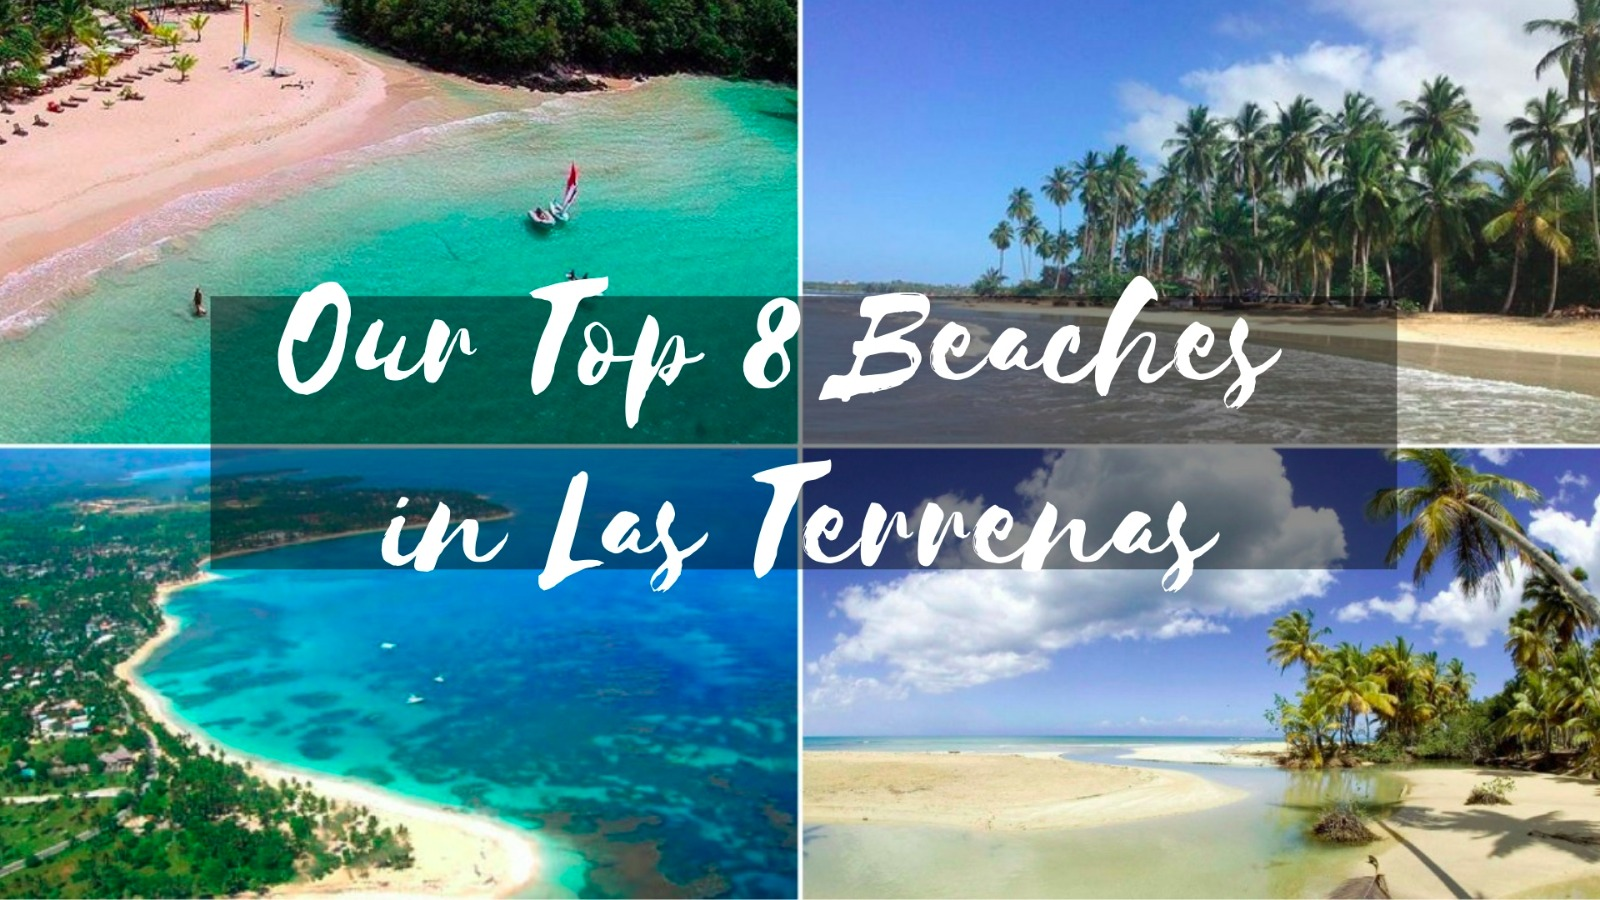 Our Top 8 Beaches in Las Terrenas.jpeg